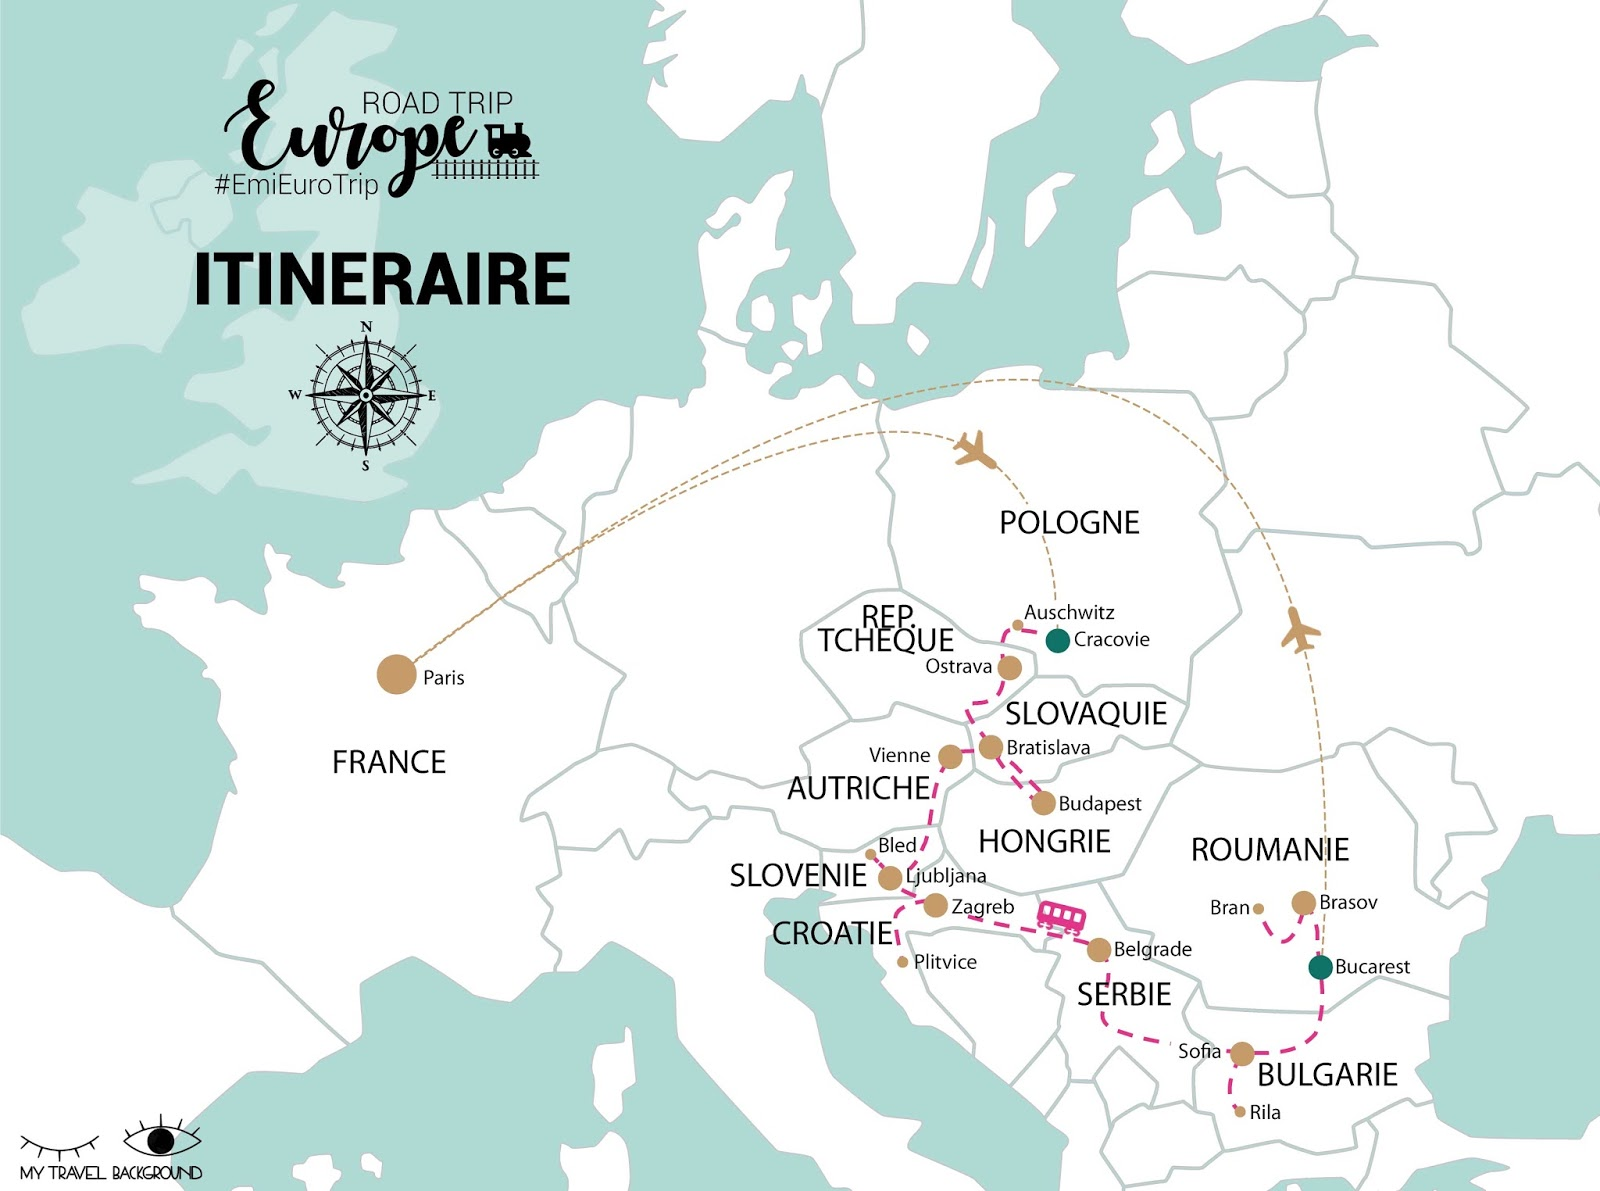 My Travel Background : traverser l'Europe en train : mon expérience du Pass Interrail (et les répones à vos questions !) - Carte itinéraire